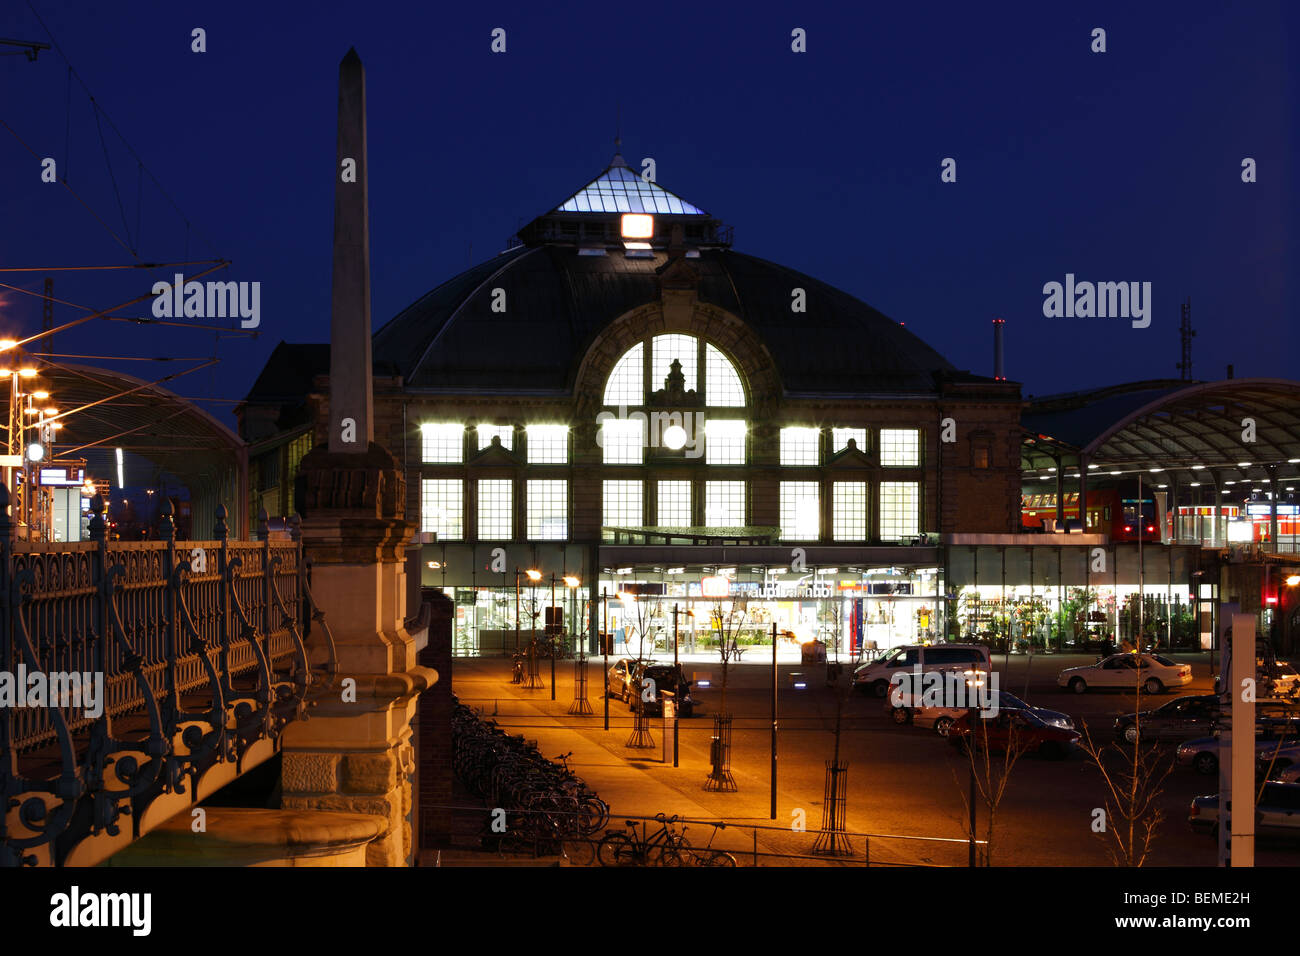 main station in Halle (Saale) at evening, Germany; Hauptbahnhof in Halle - Stock Image